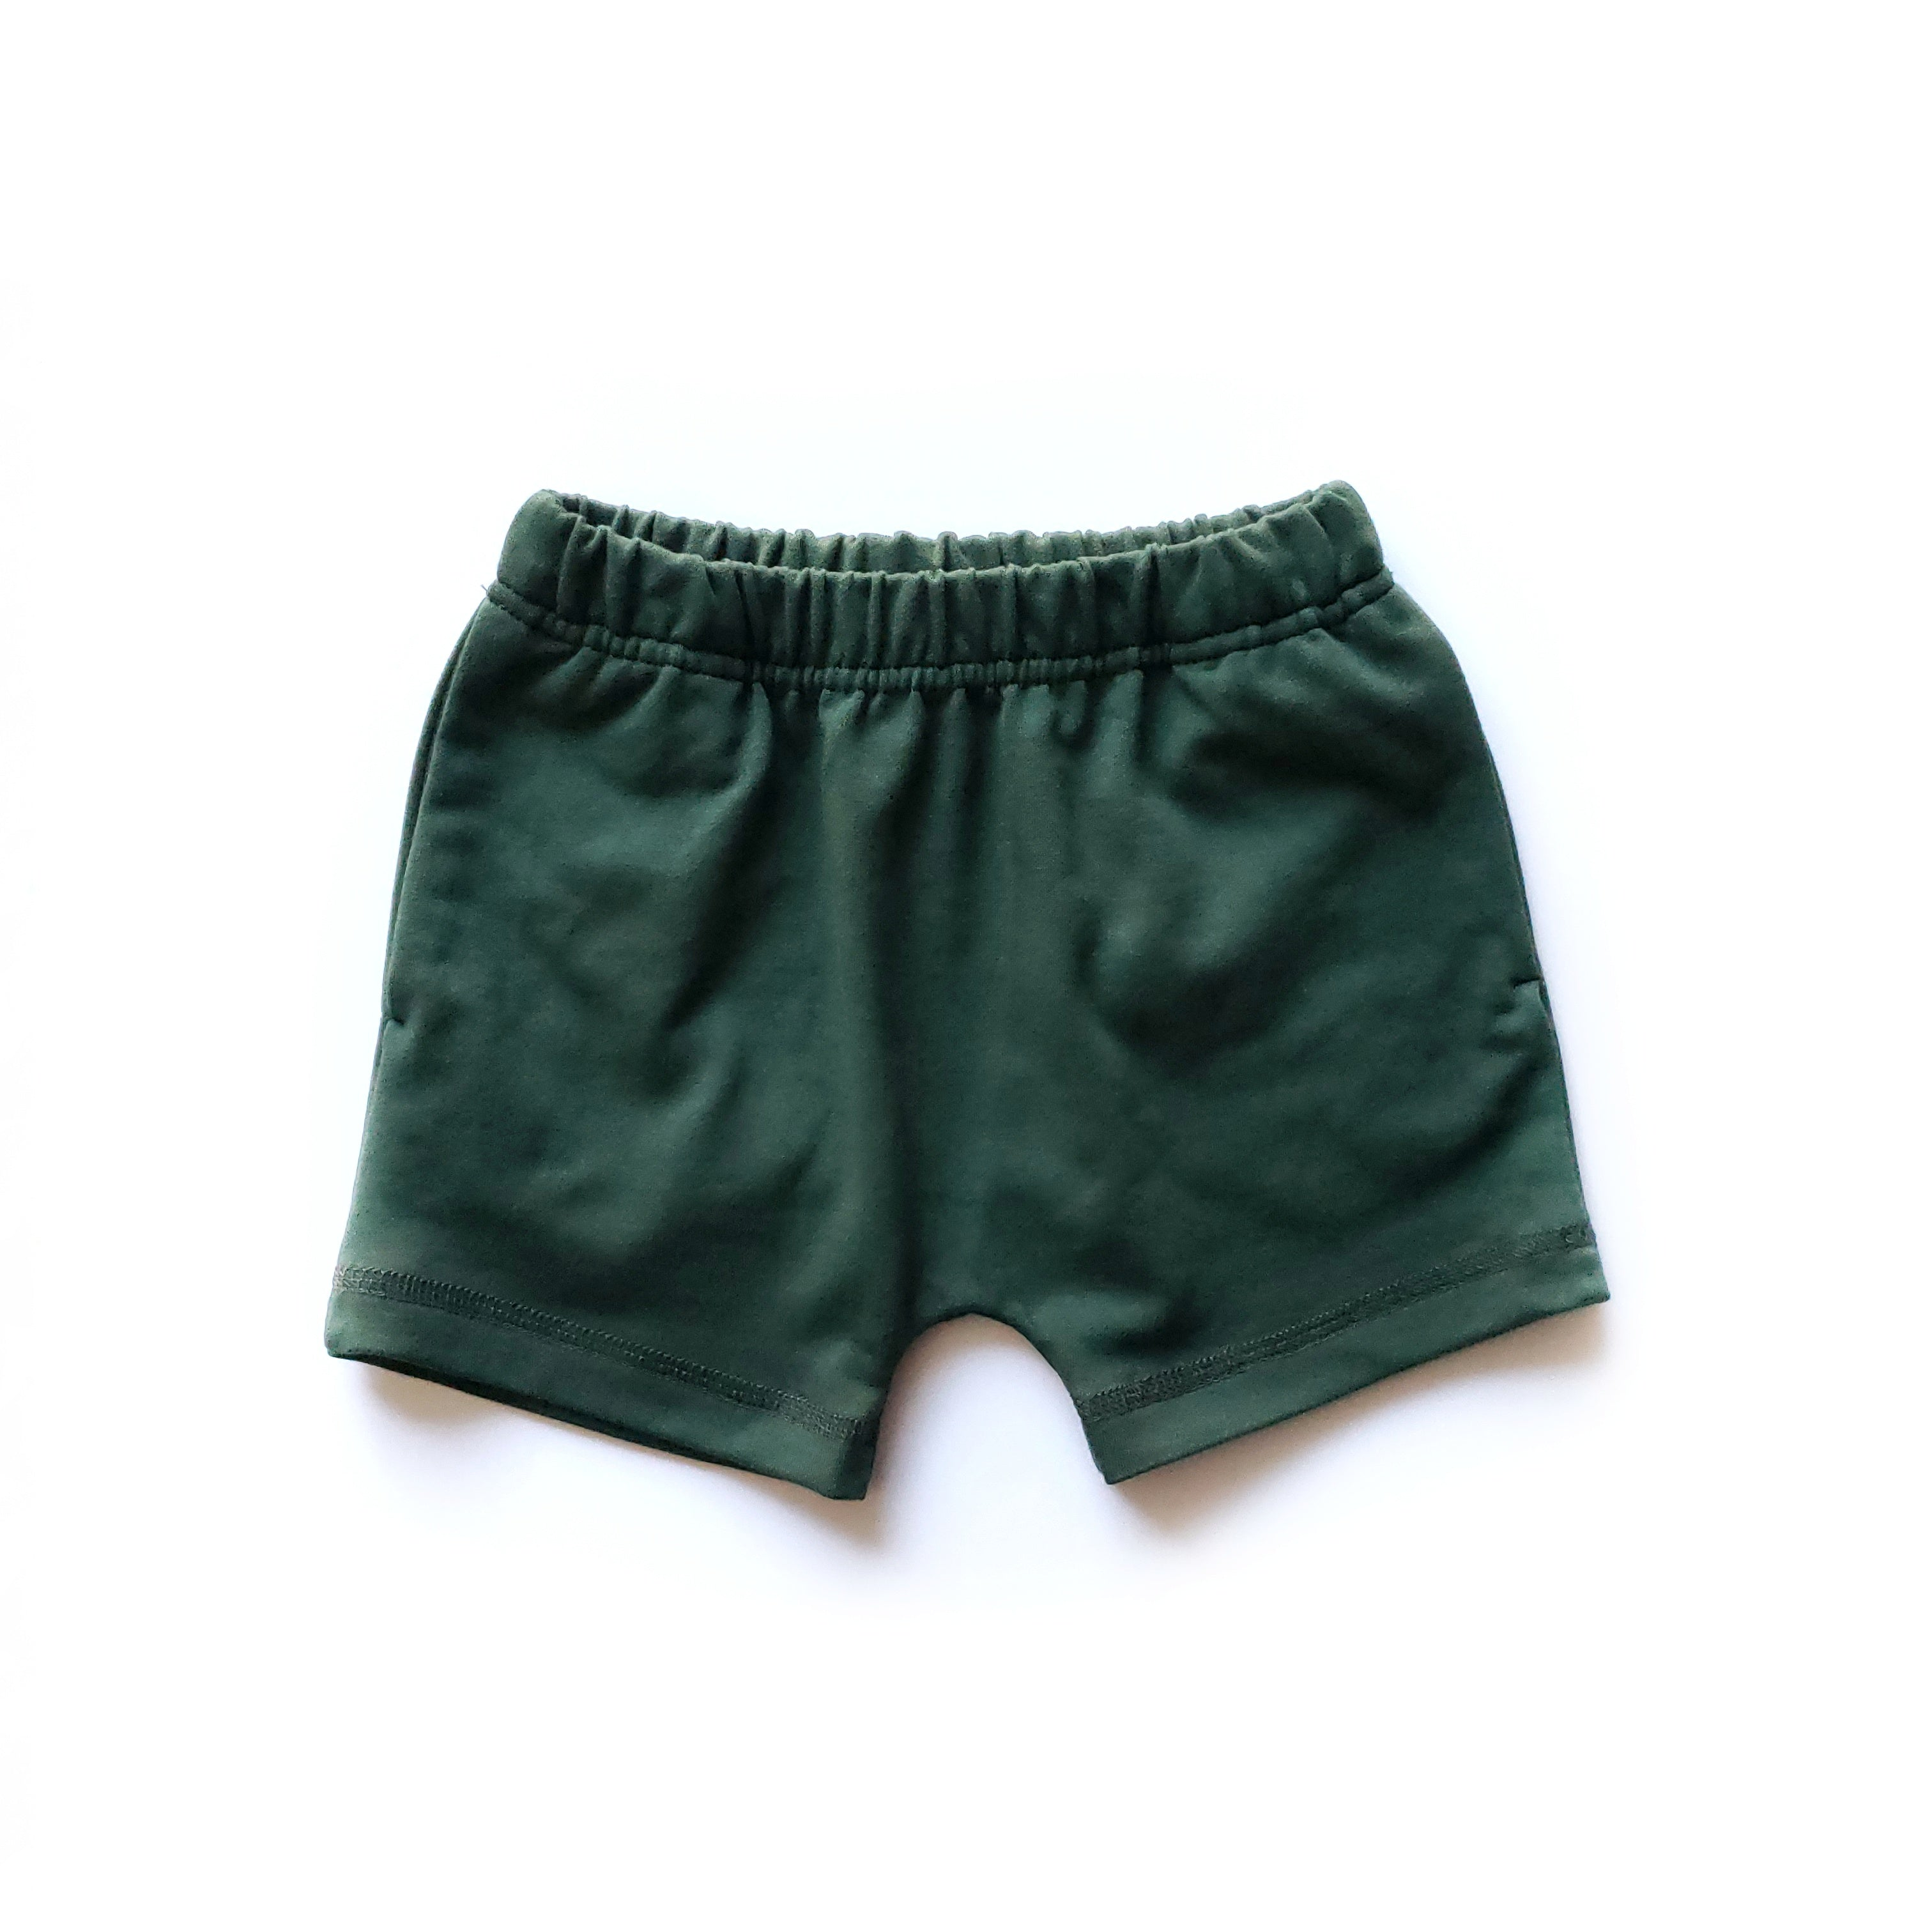 Everyday Shorts in Recycle - Front View